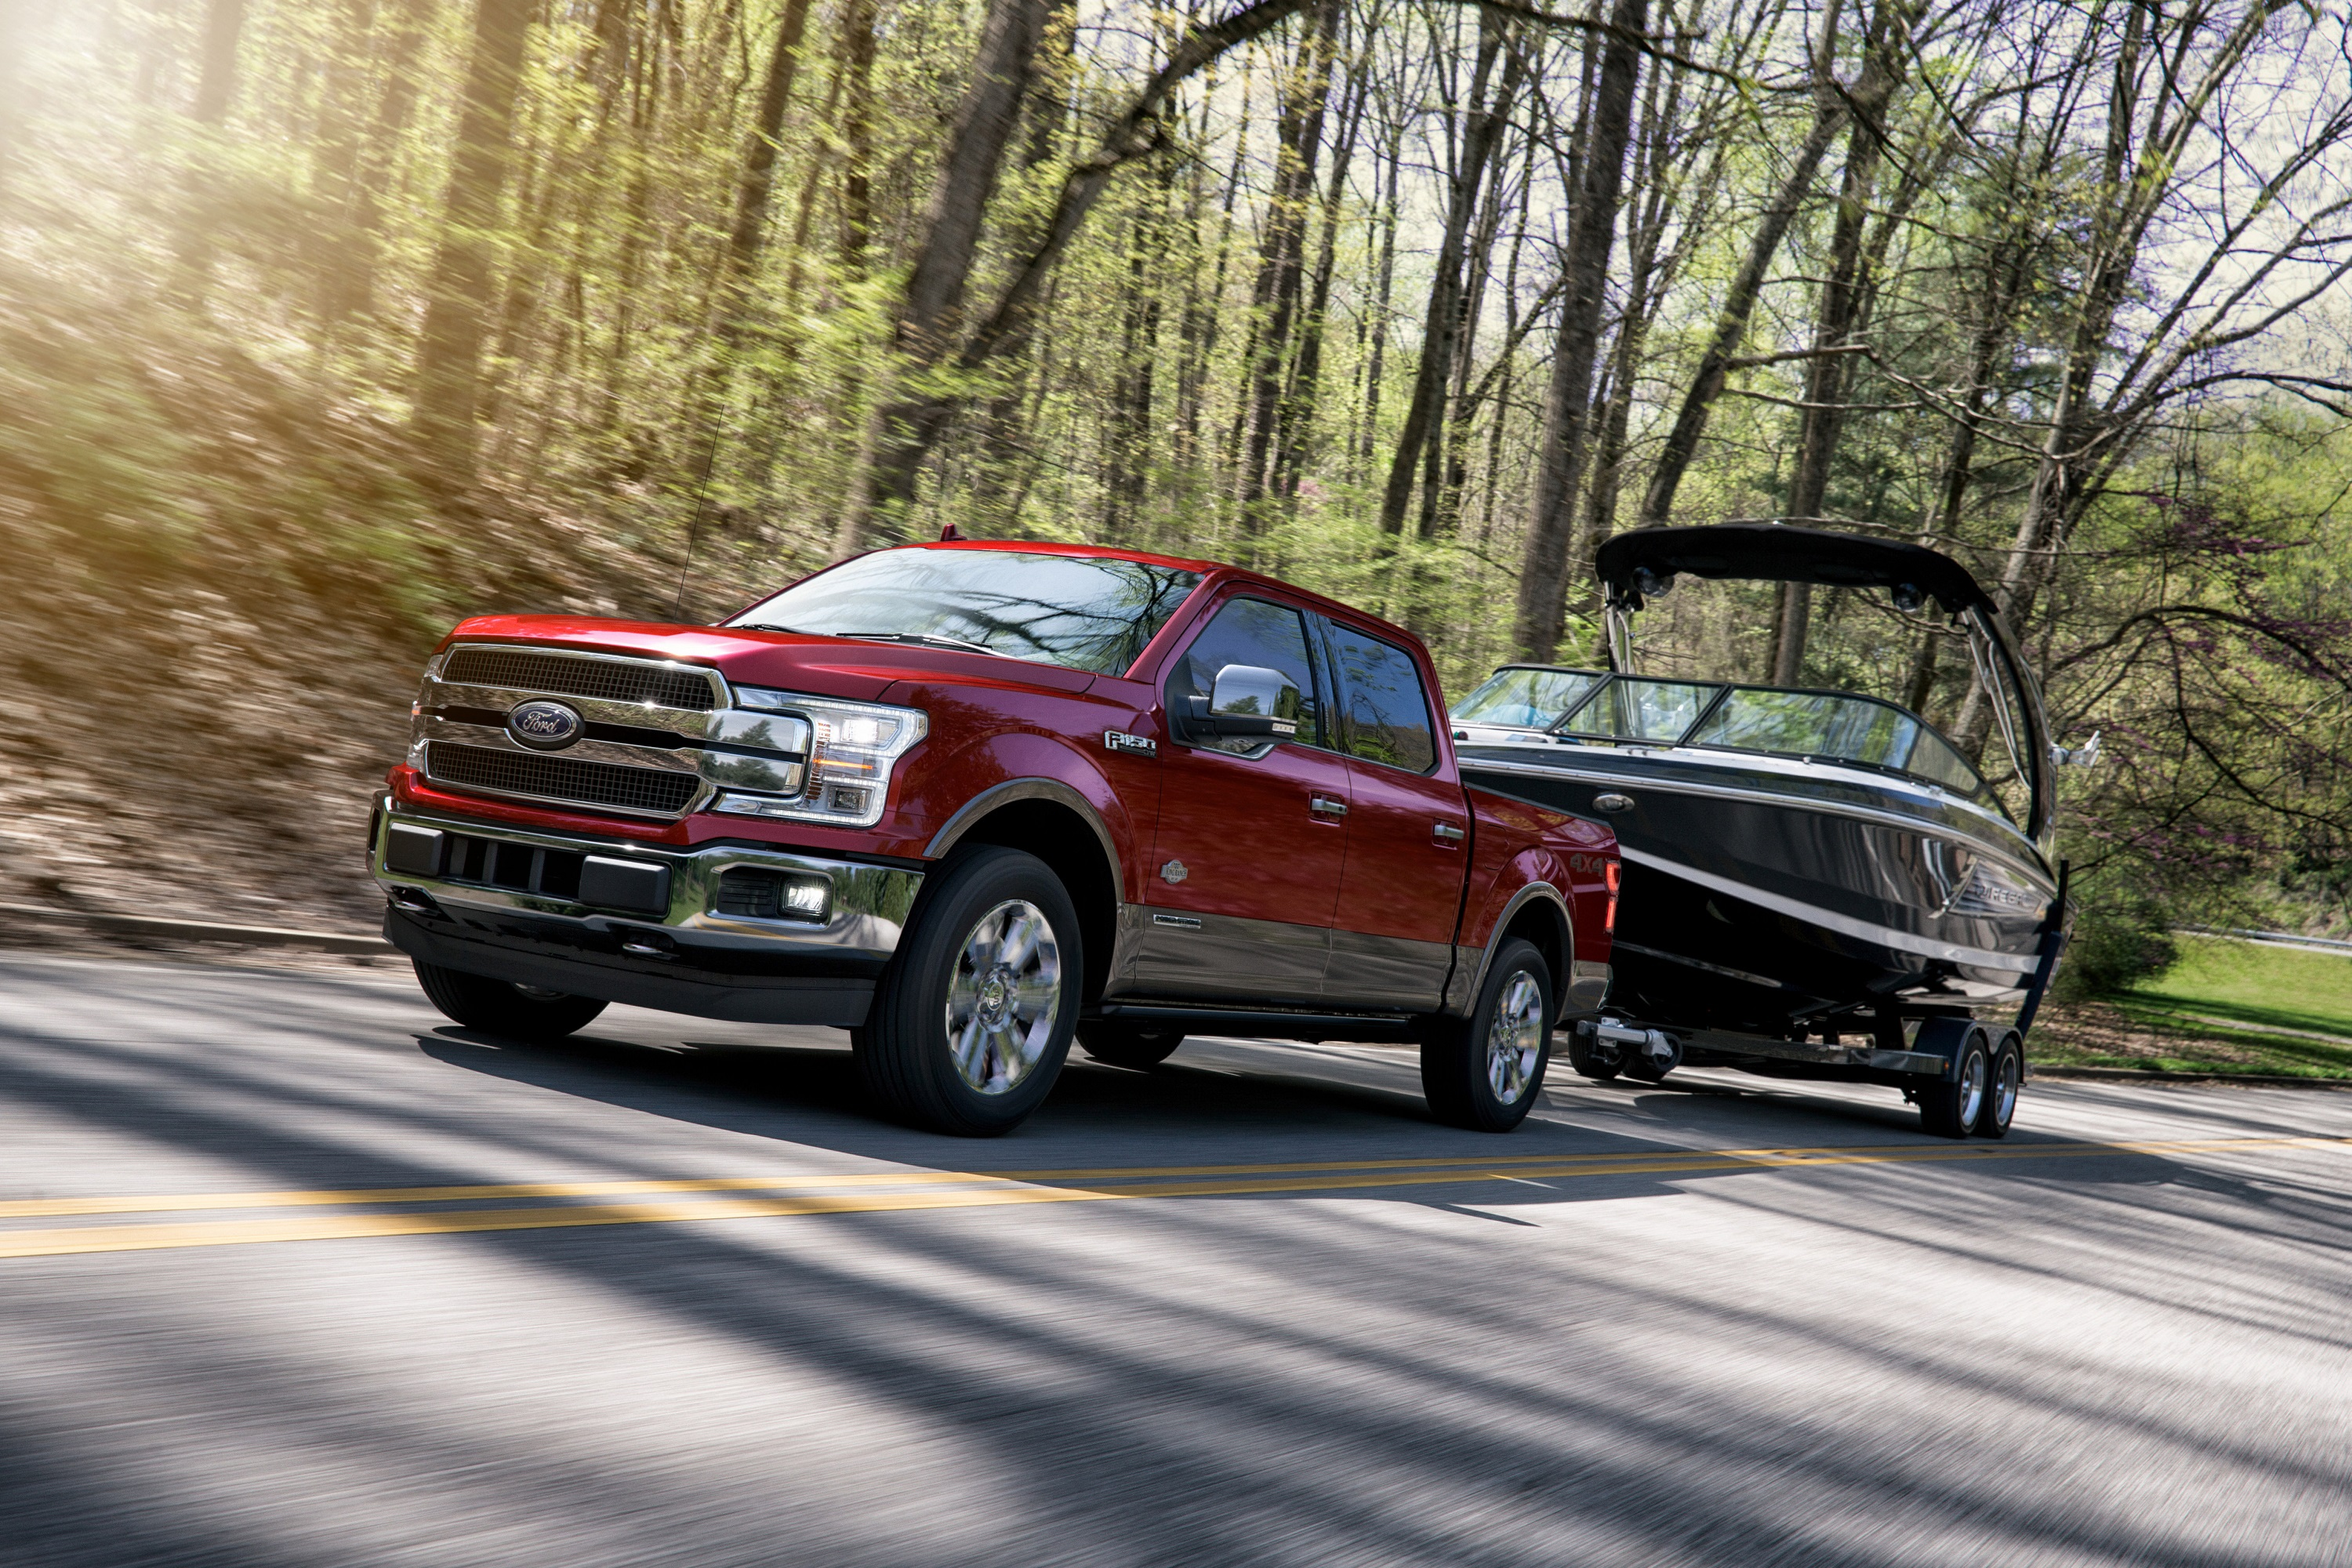 Fords   Liter V  Power Strokesel Engine Produces  Horsepower And  Lb Ft Of Torque  Pounds Of Towing Capacity And  Pounds Of